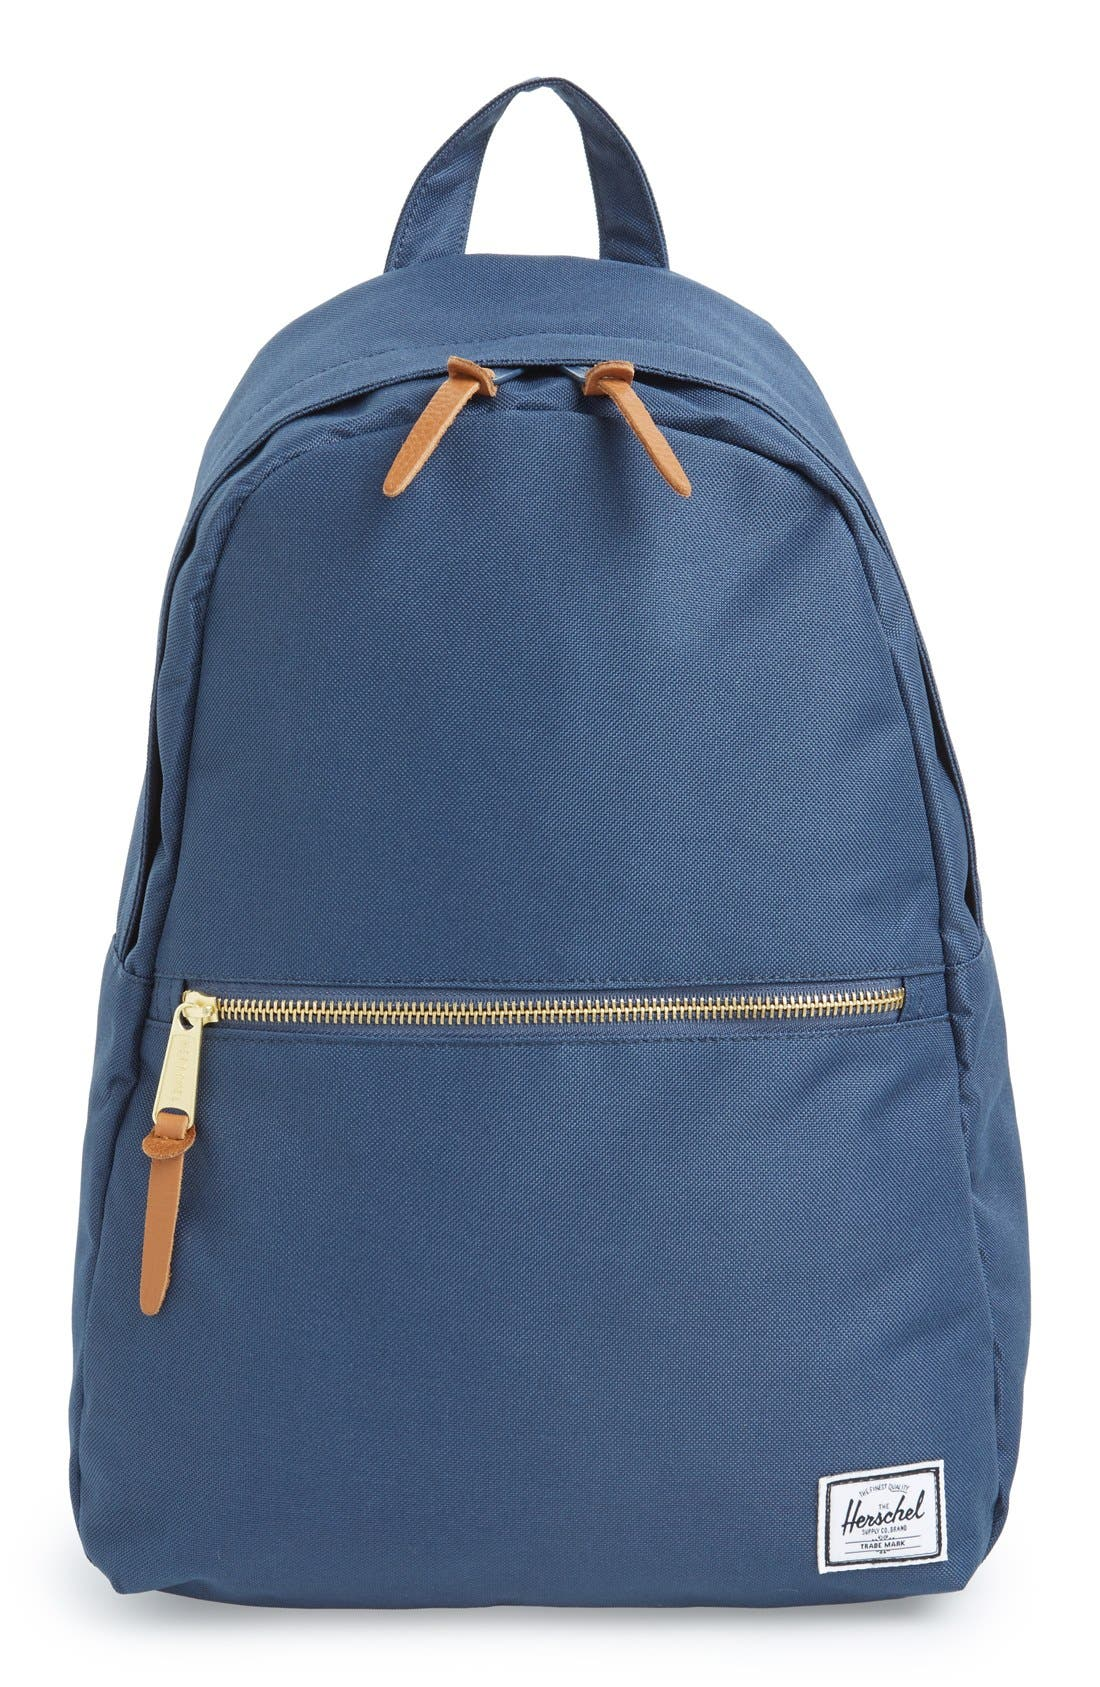 Alternate Image 1 Selected - Herschel Supply Co. 'Town Mid-Volume' Backpack